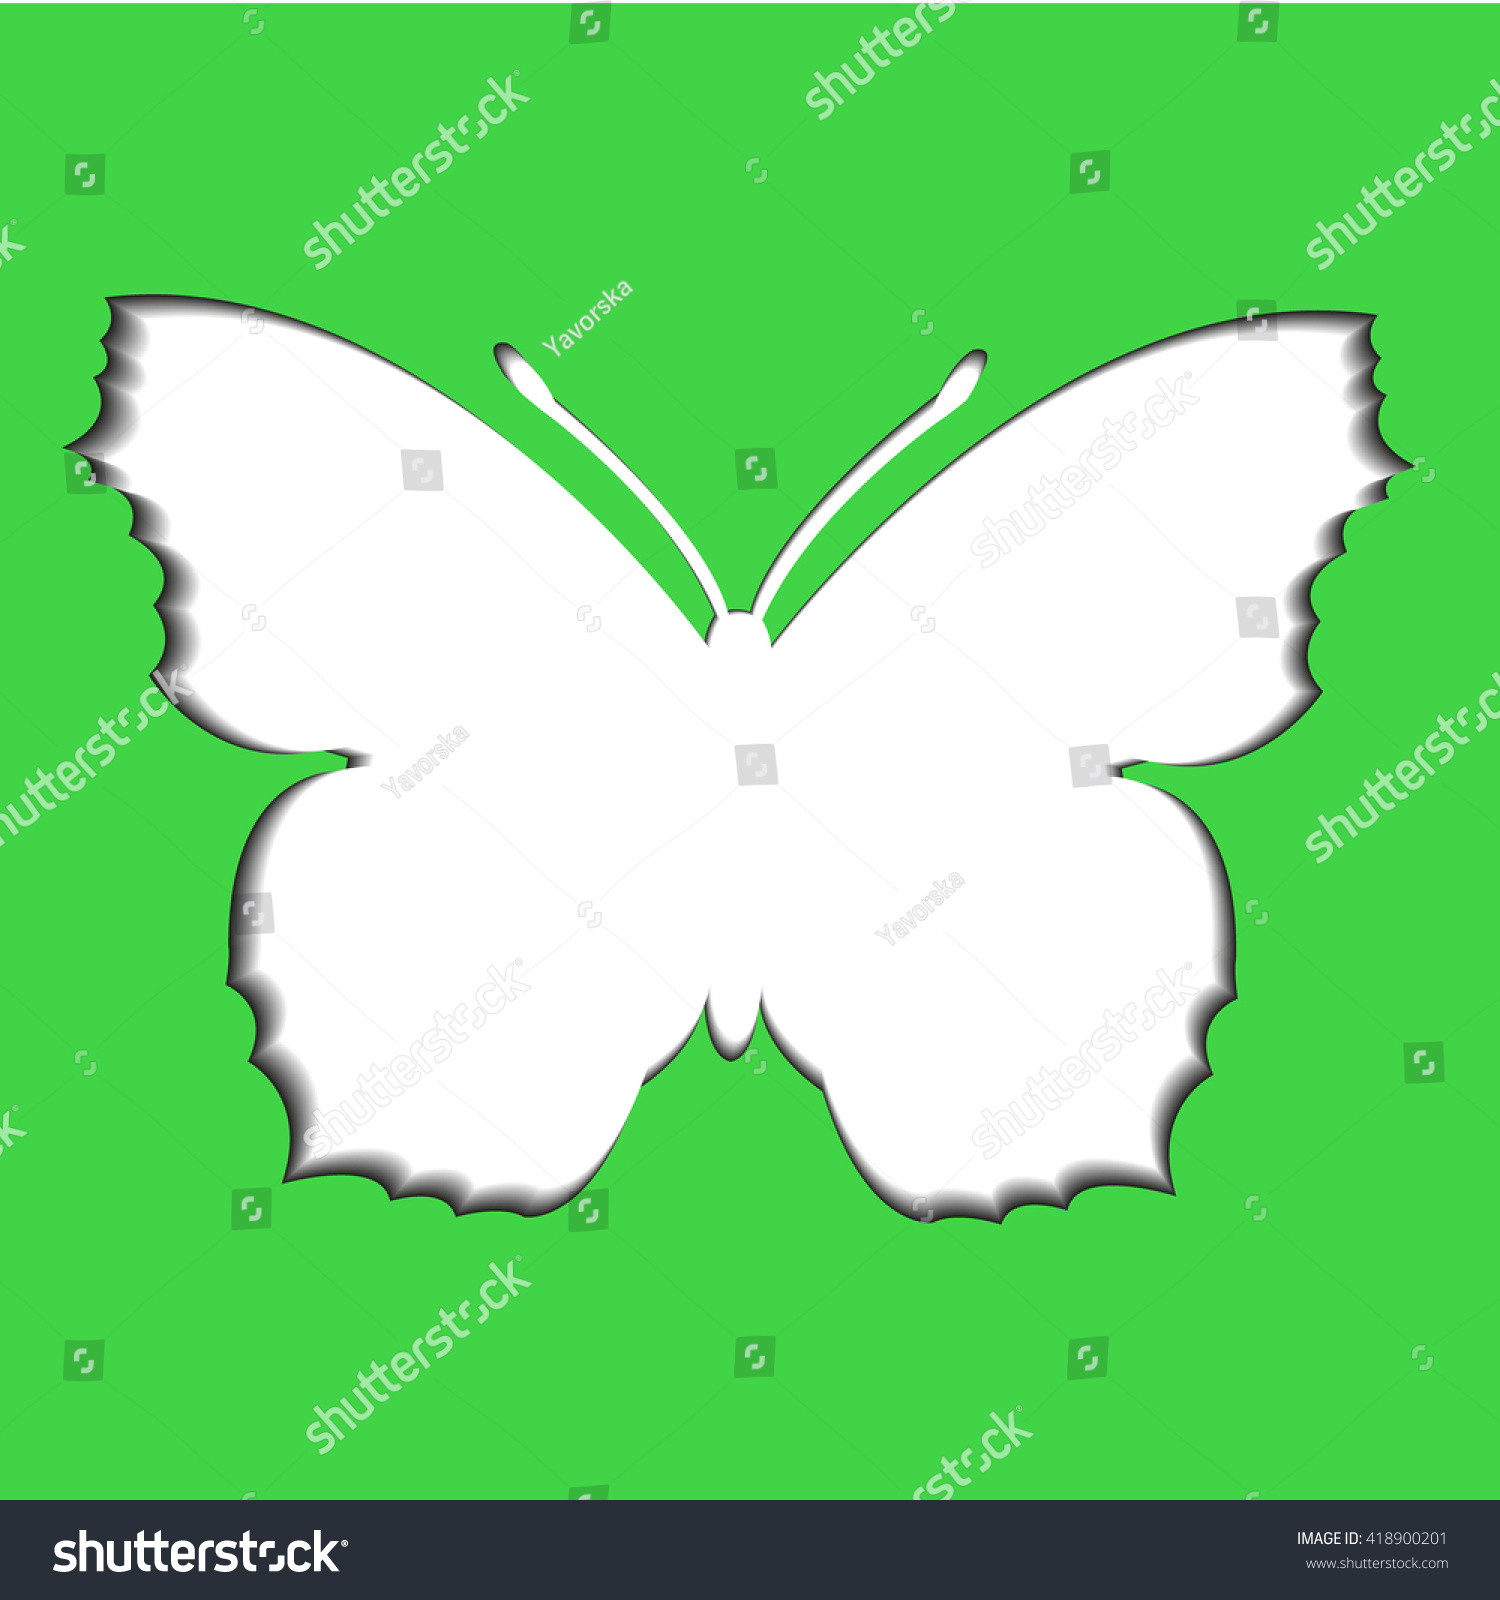 Vector butterfly background butterfly poster butterfly stock vector of butterfly background butterfly poster butterfly symbol or icon butterfly logo biocorpaavc Images